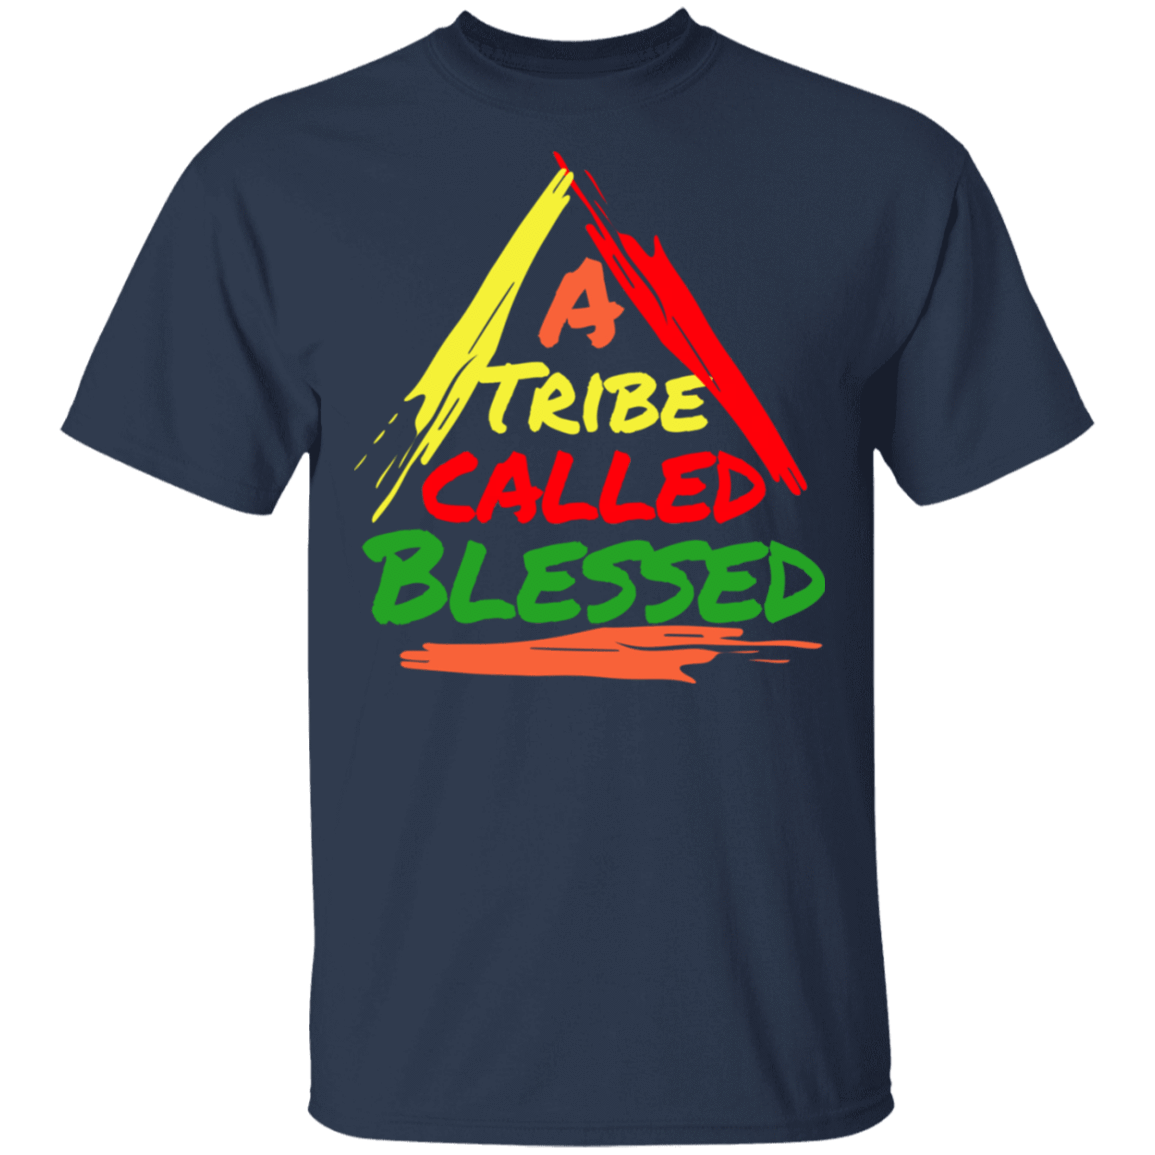 A Tribe Called Blessed T-Shirts, Hoodies 22-111-80183267-250 - Tee Ript